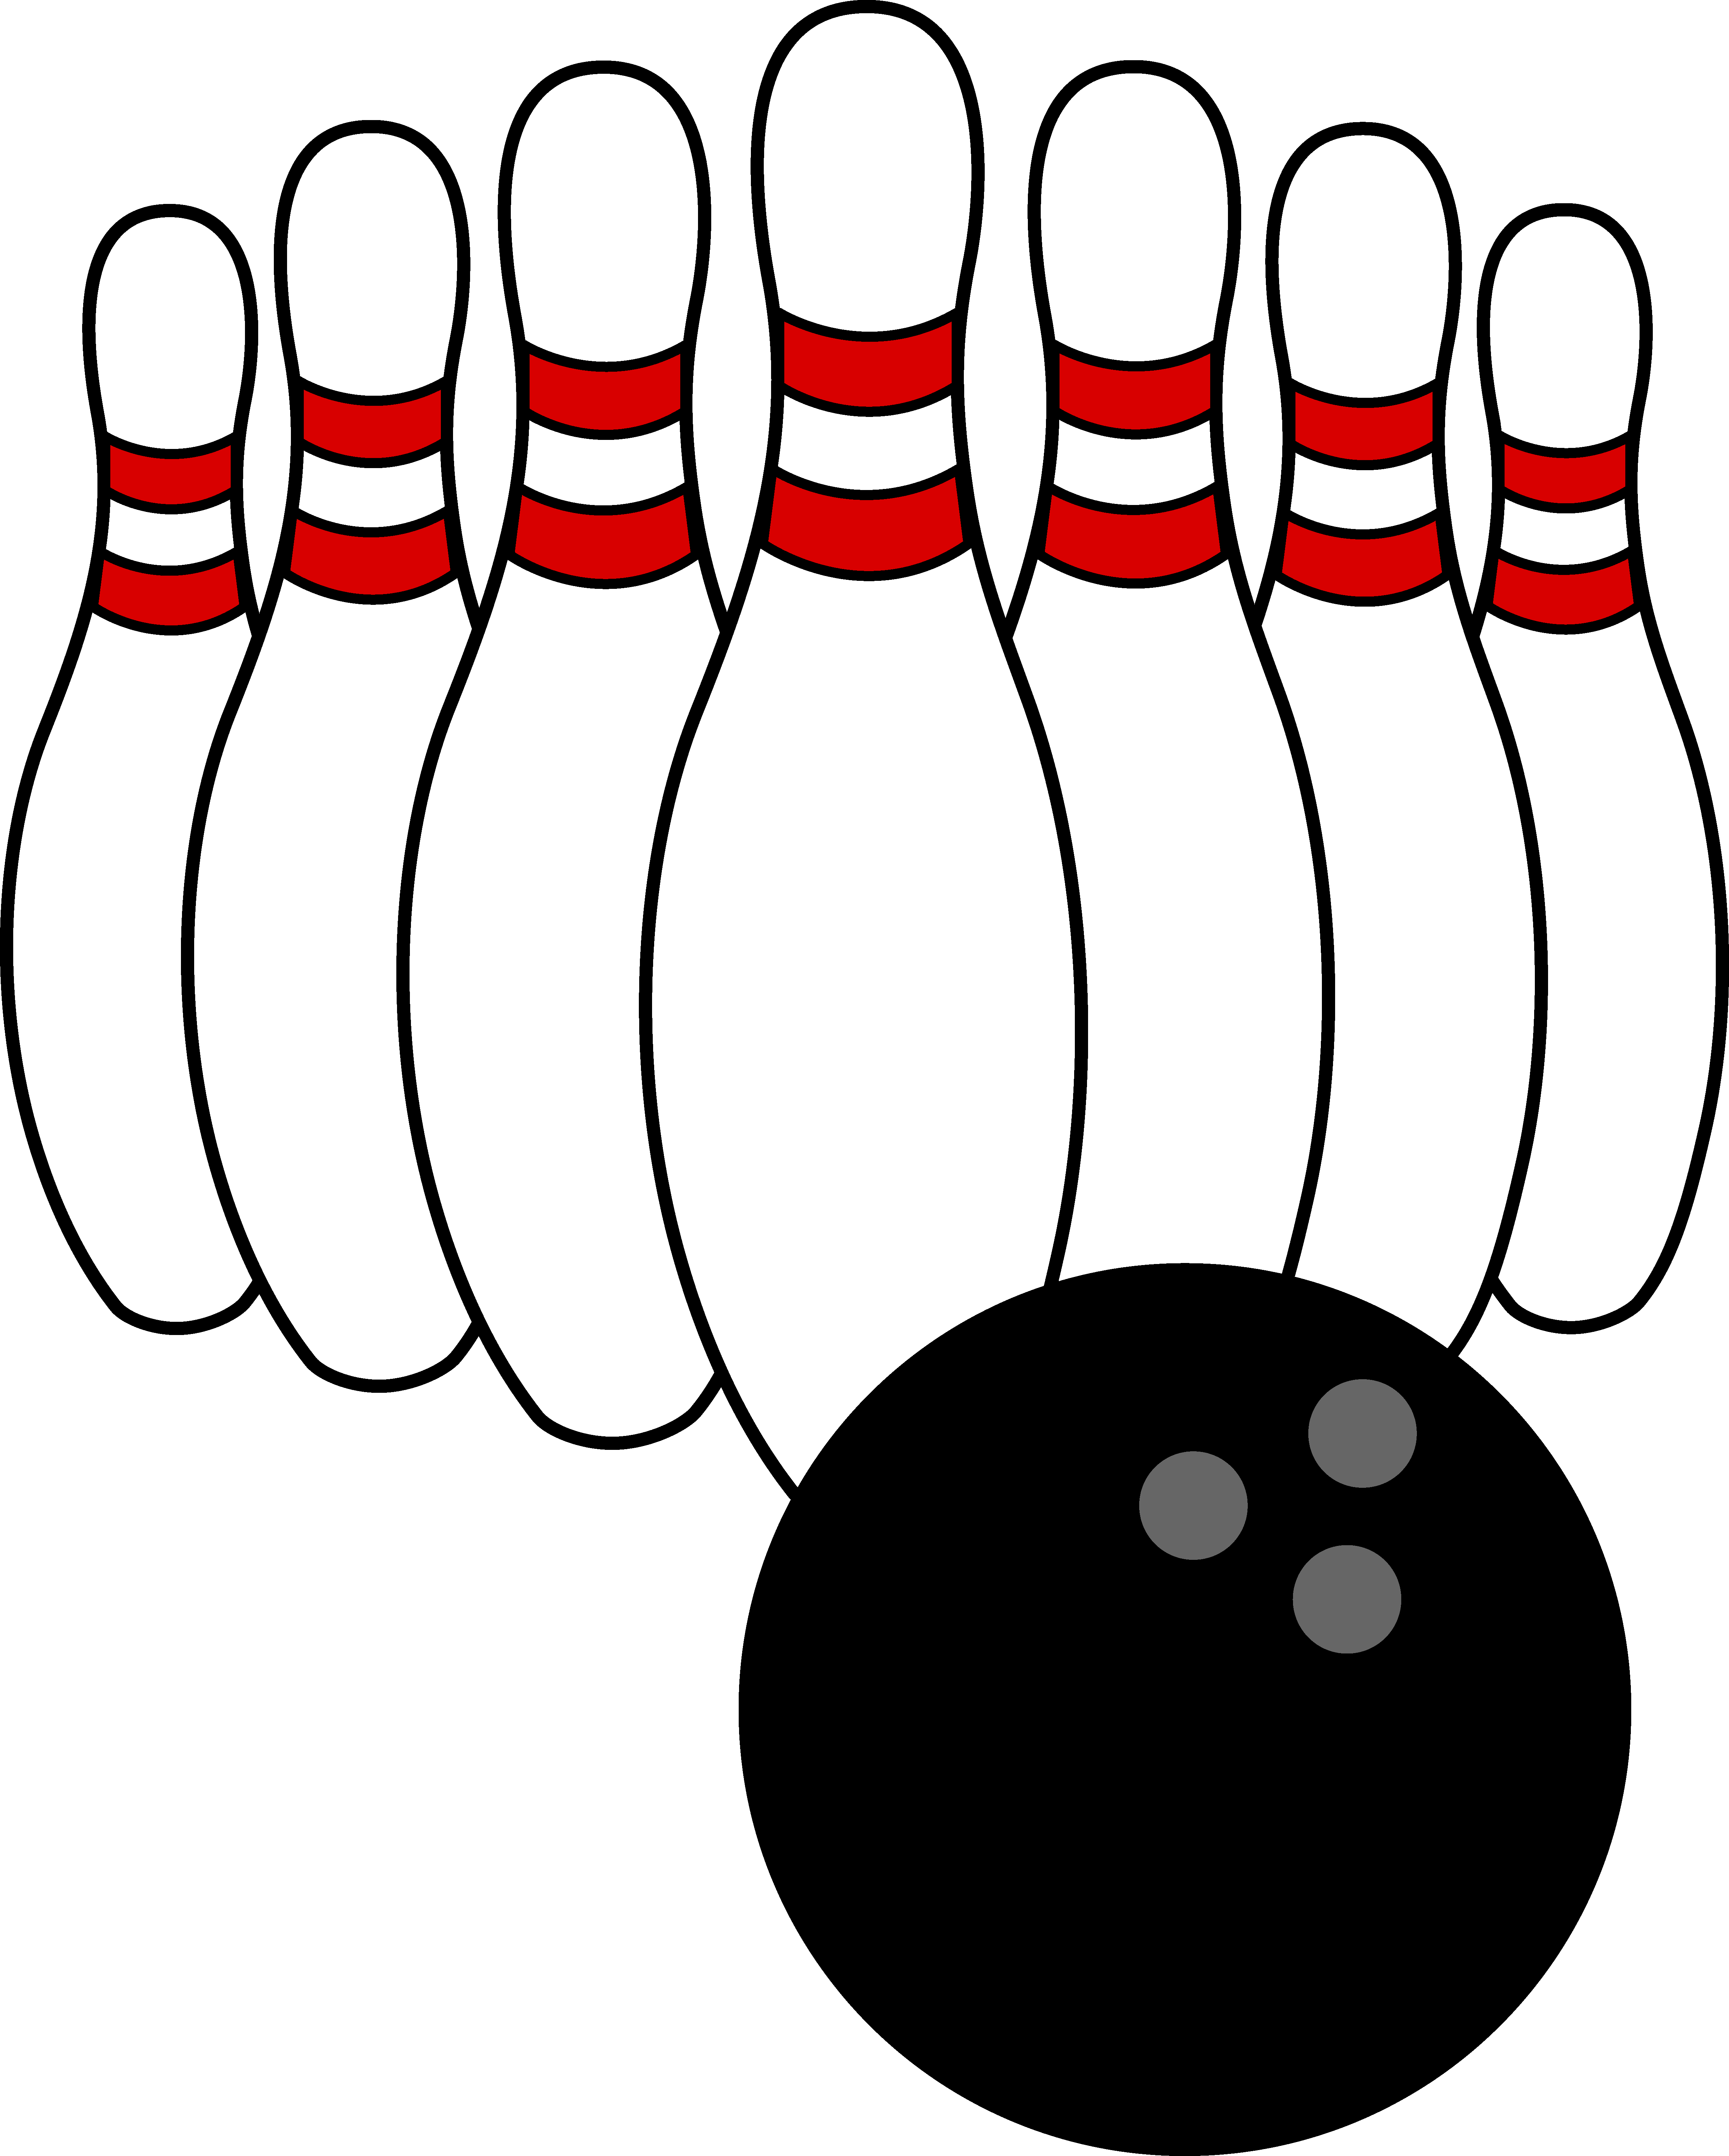 Bowling clip art ball. Pins clipart picture royalty free